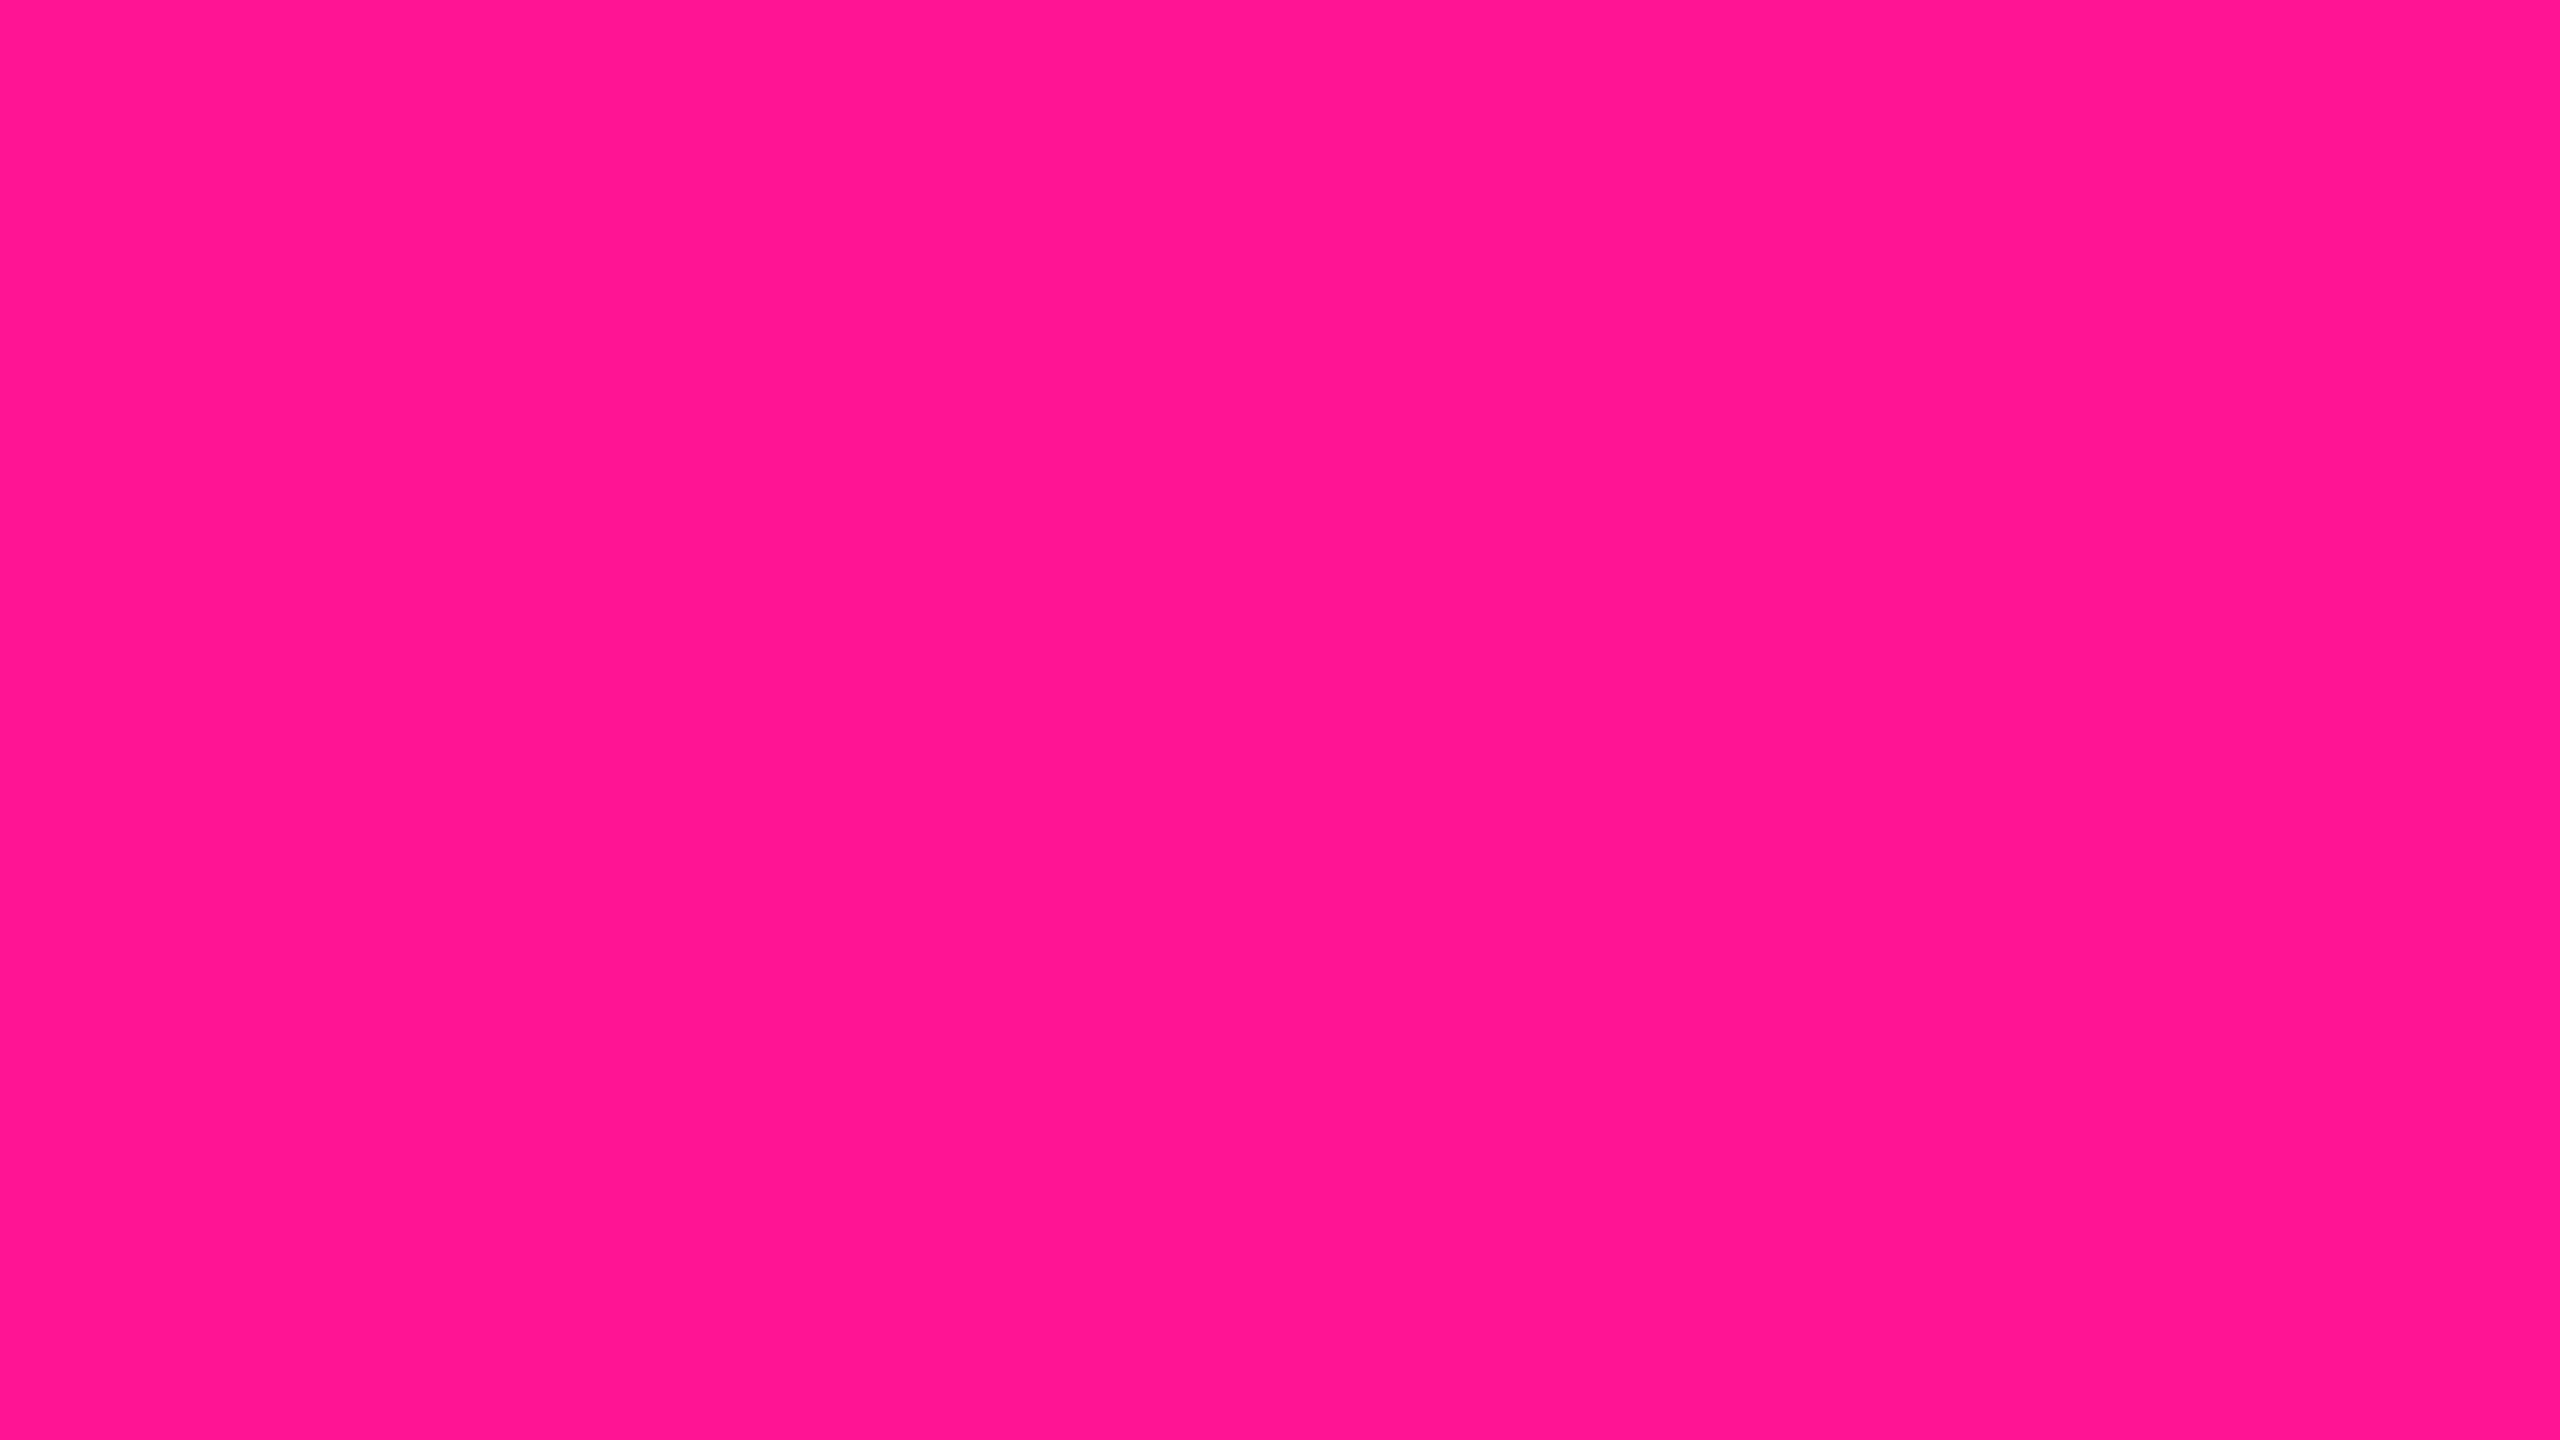 2560x1440 Fluorescent Pink Solid Color Background